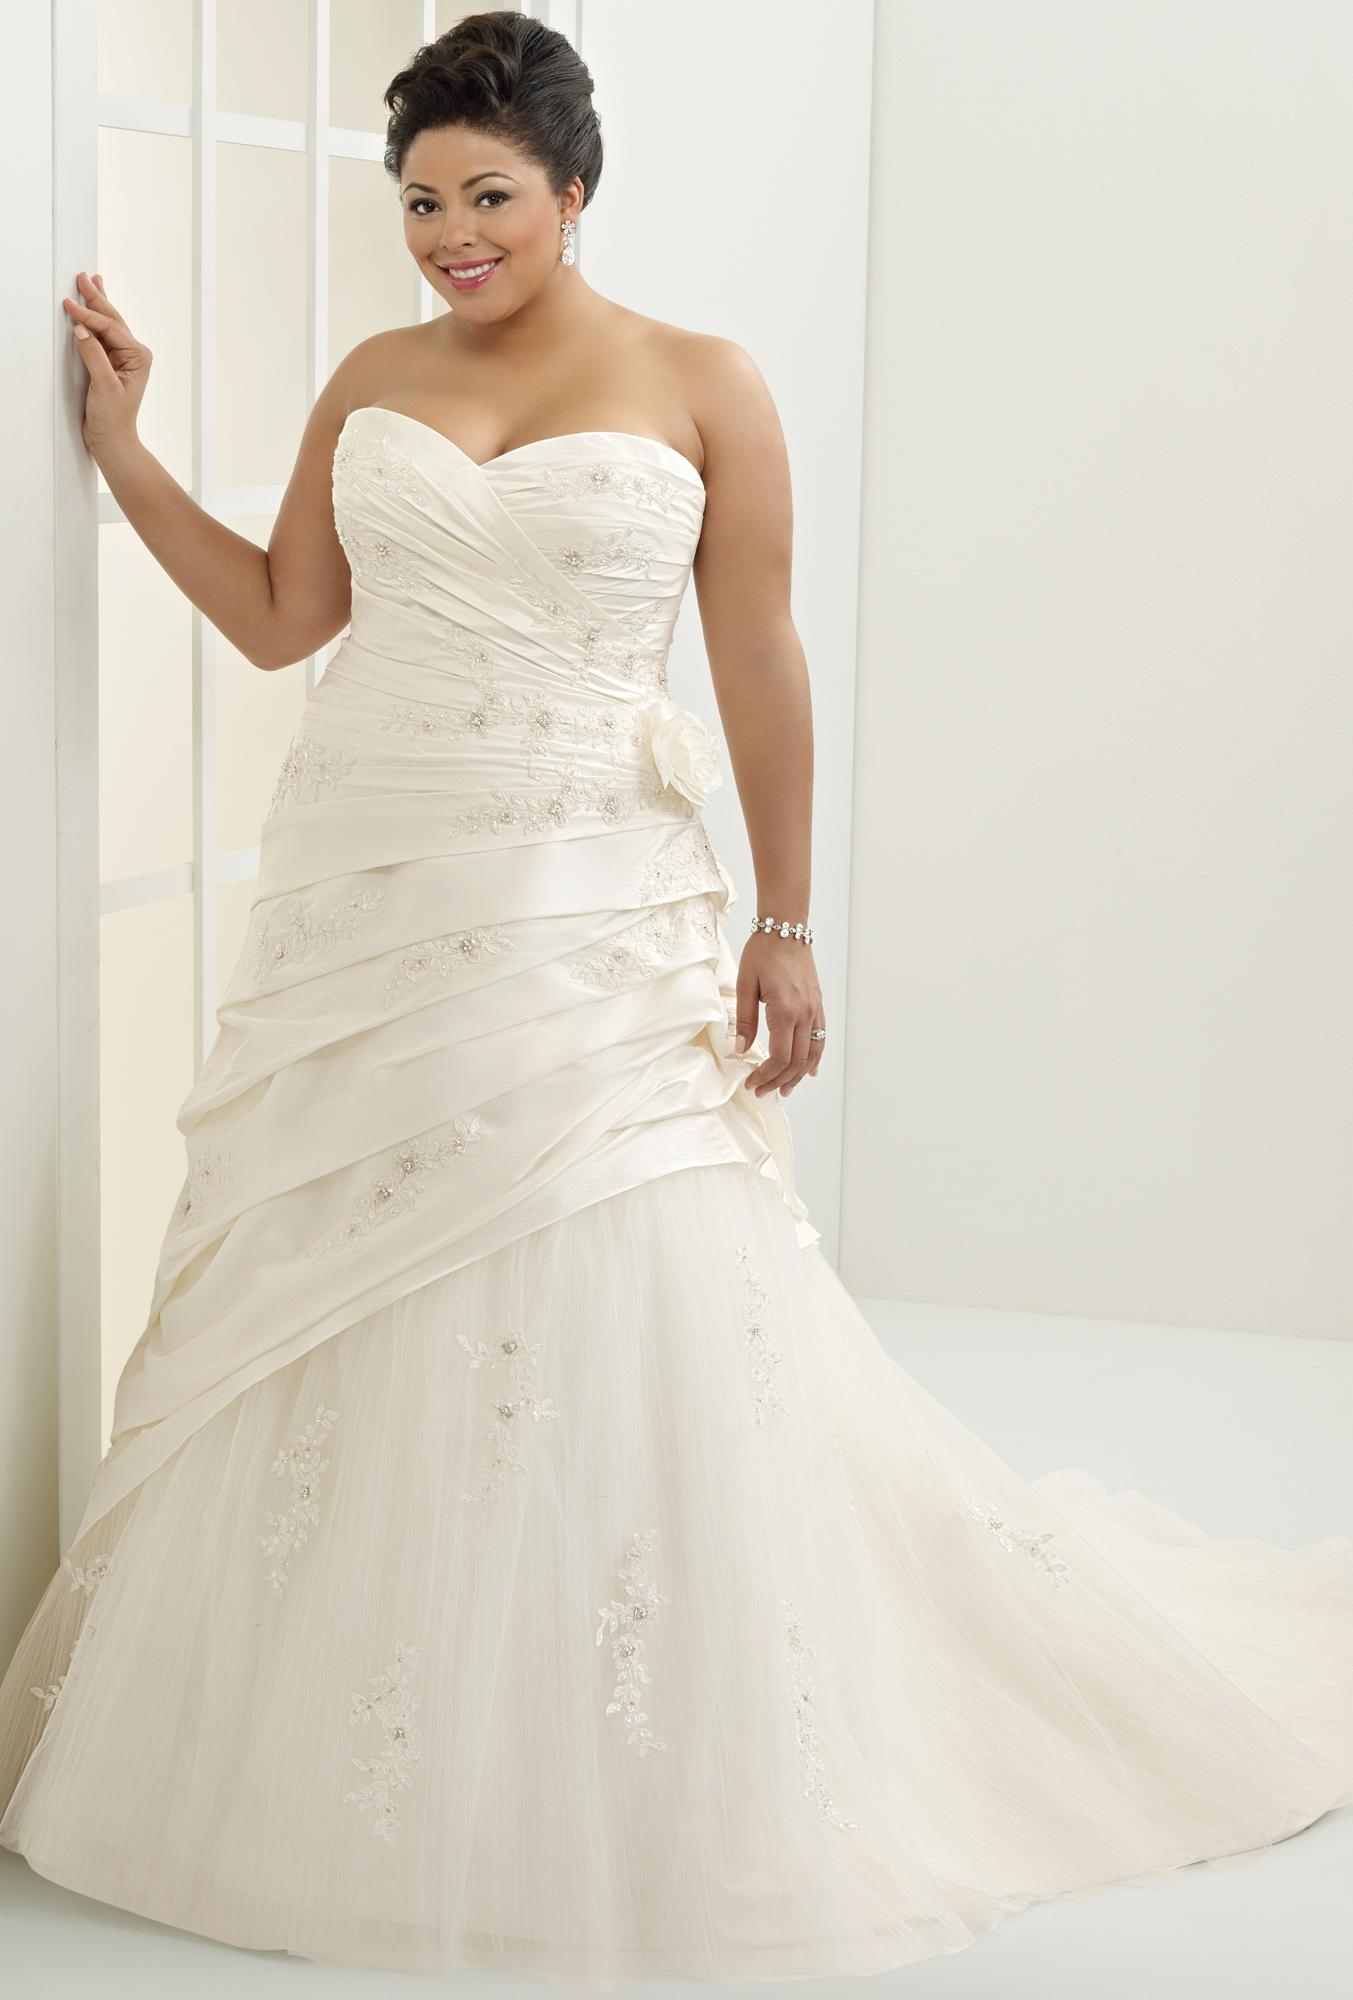 Theglamouraidecoration fashion advice for plus size women for Plus size wedding dresses for cheap